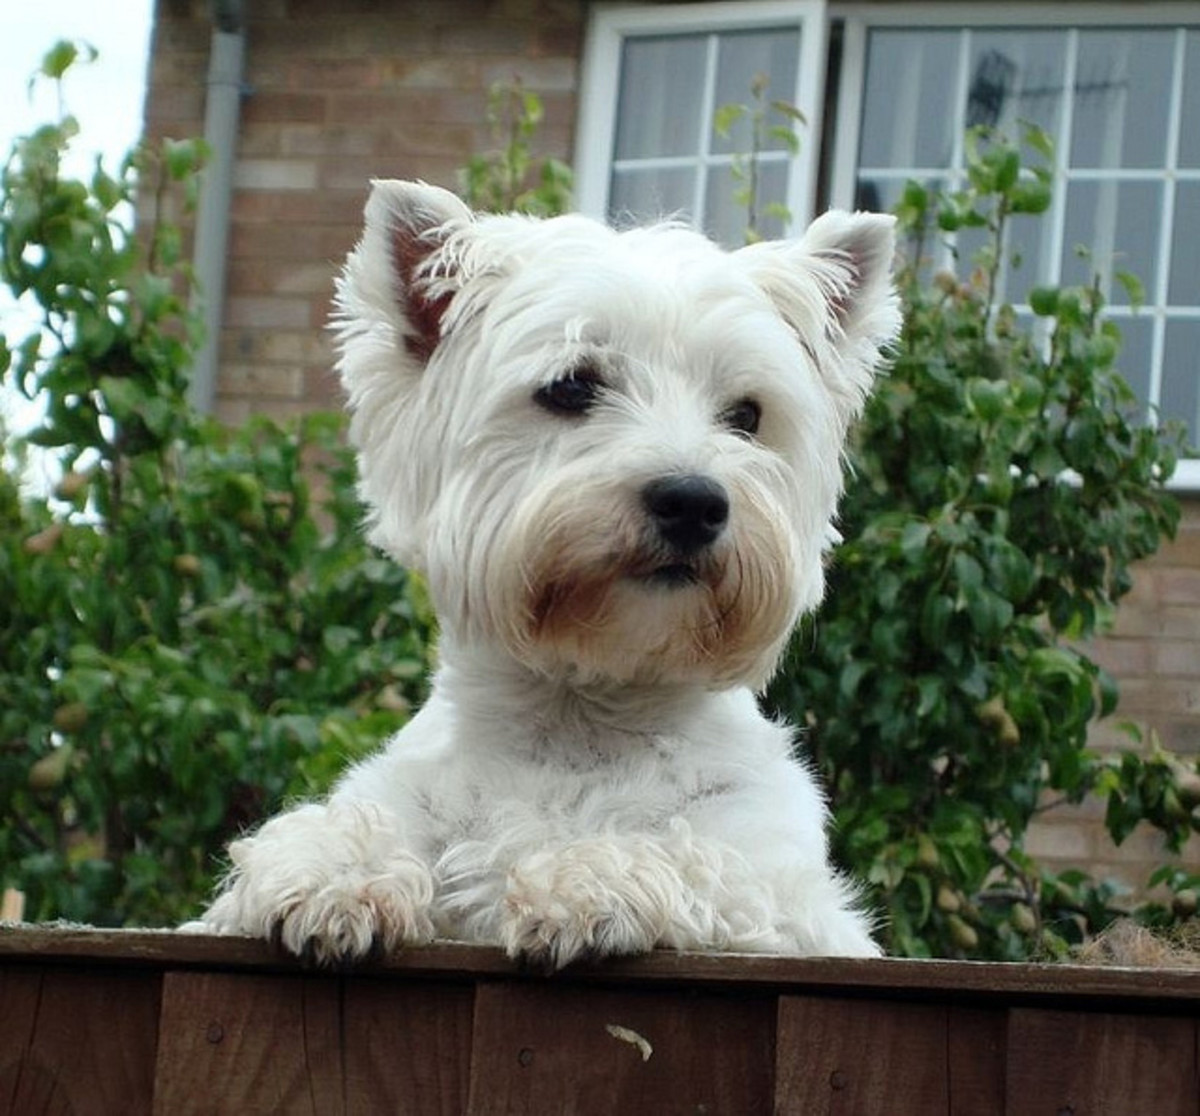 And of course, West Highland Terriers need time to hang out and just check things out.